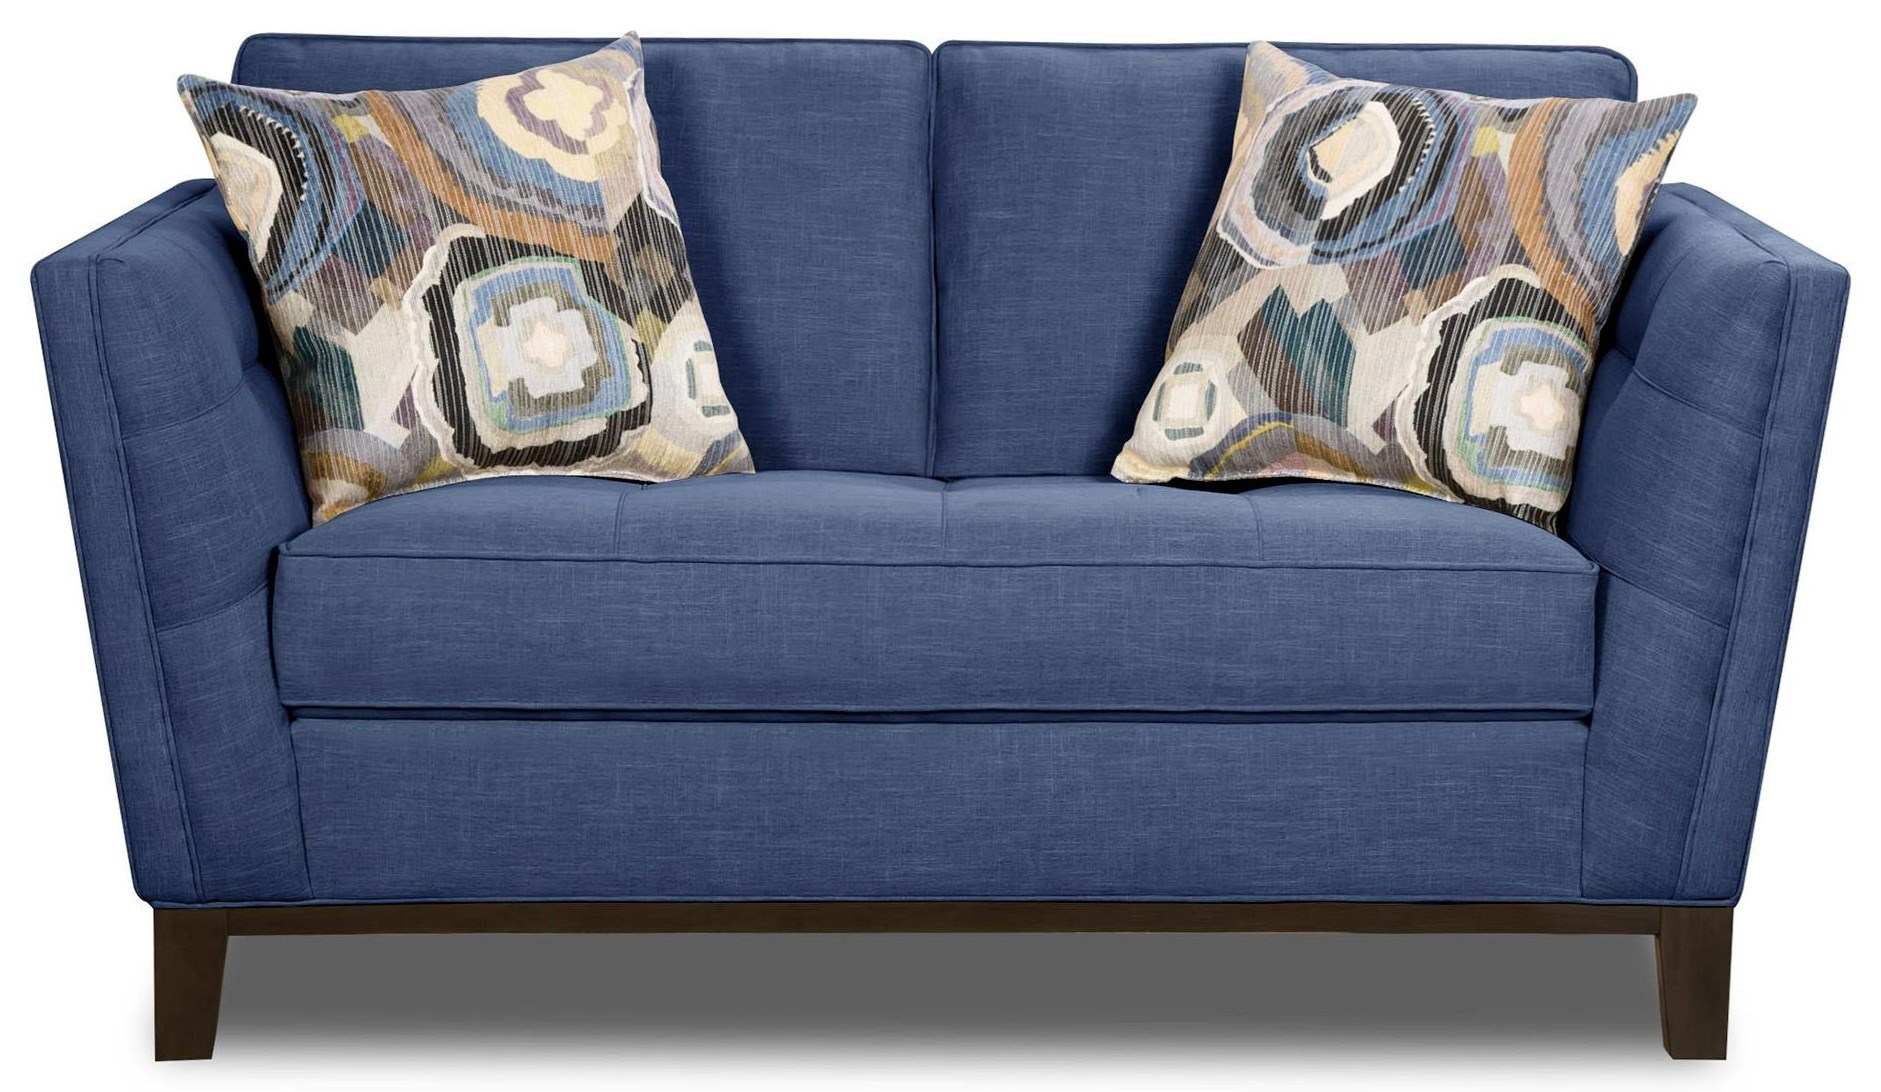 Two Sided Sofa Paradigm Admiral Loveseat By Corinthian At Great American Home Store